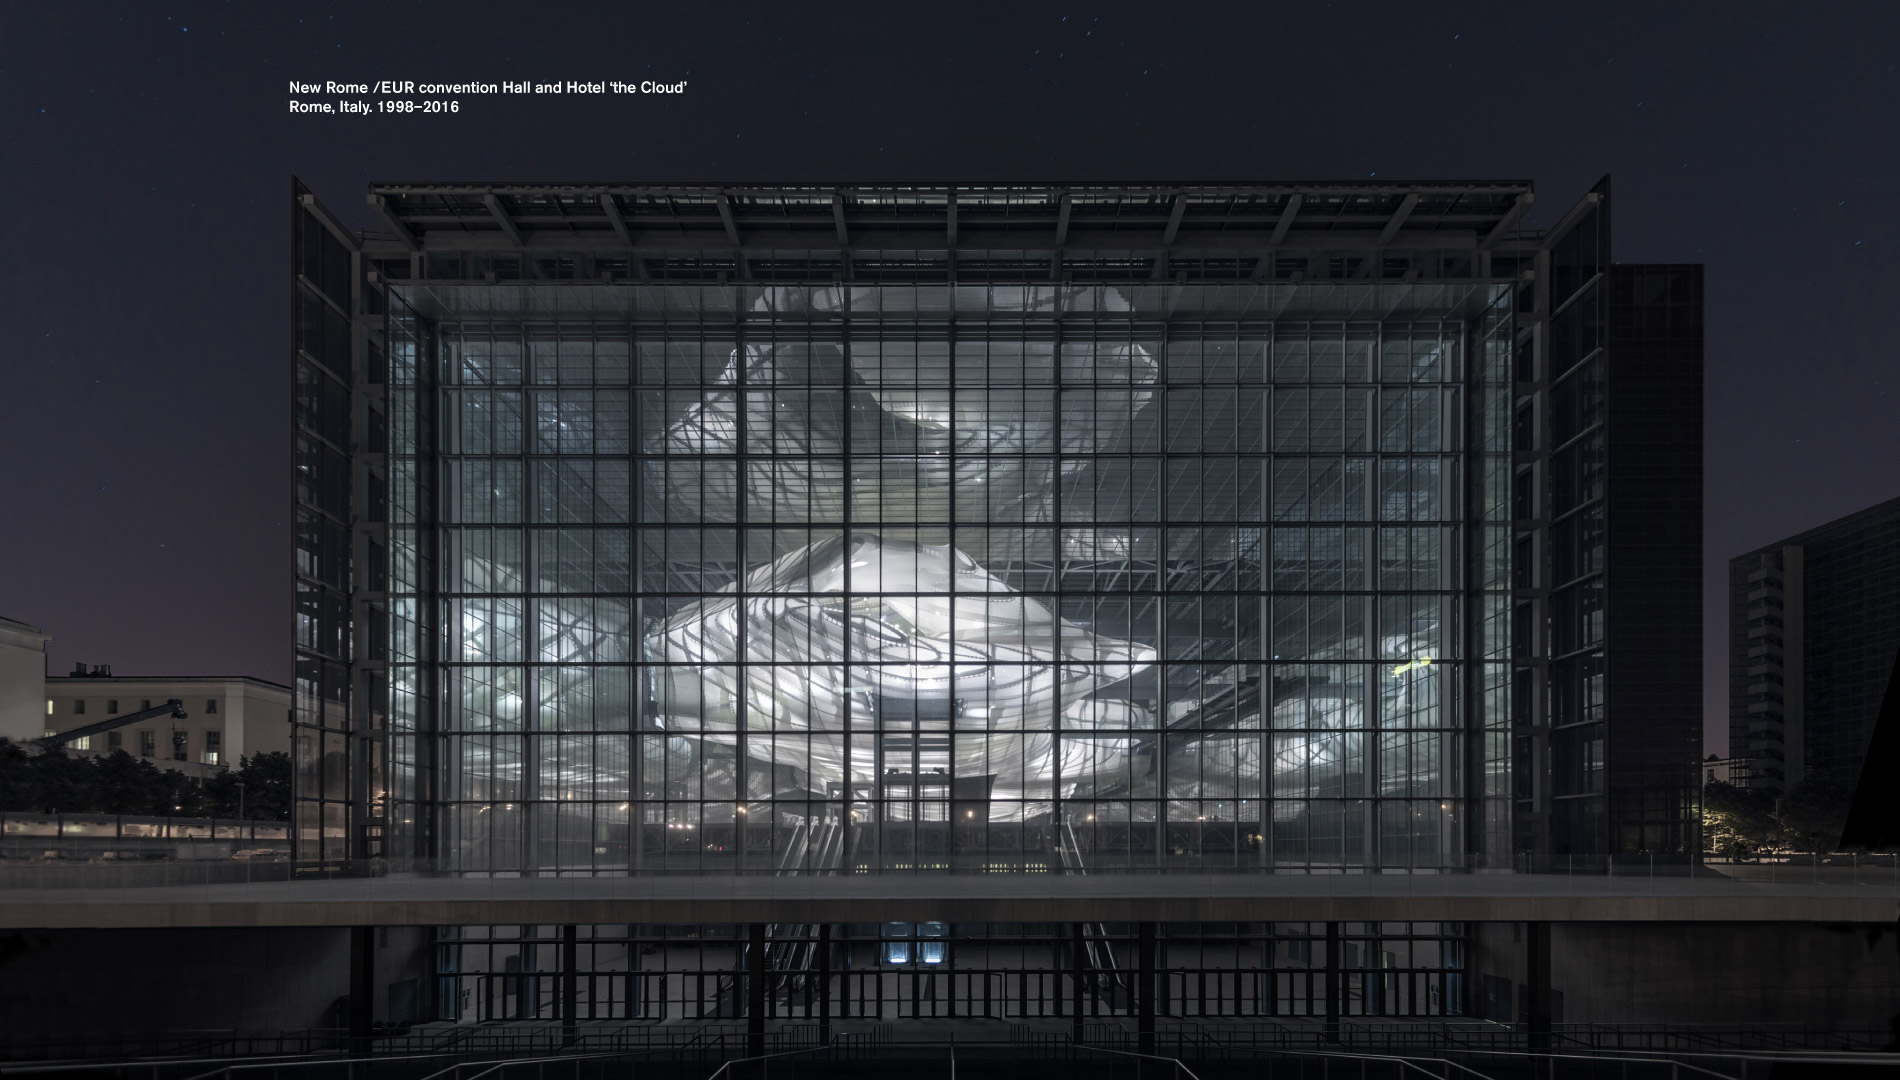 New rome eur convention centre and hotel the cloud rome italy